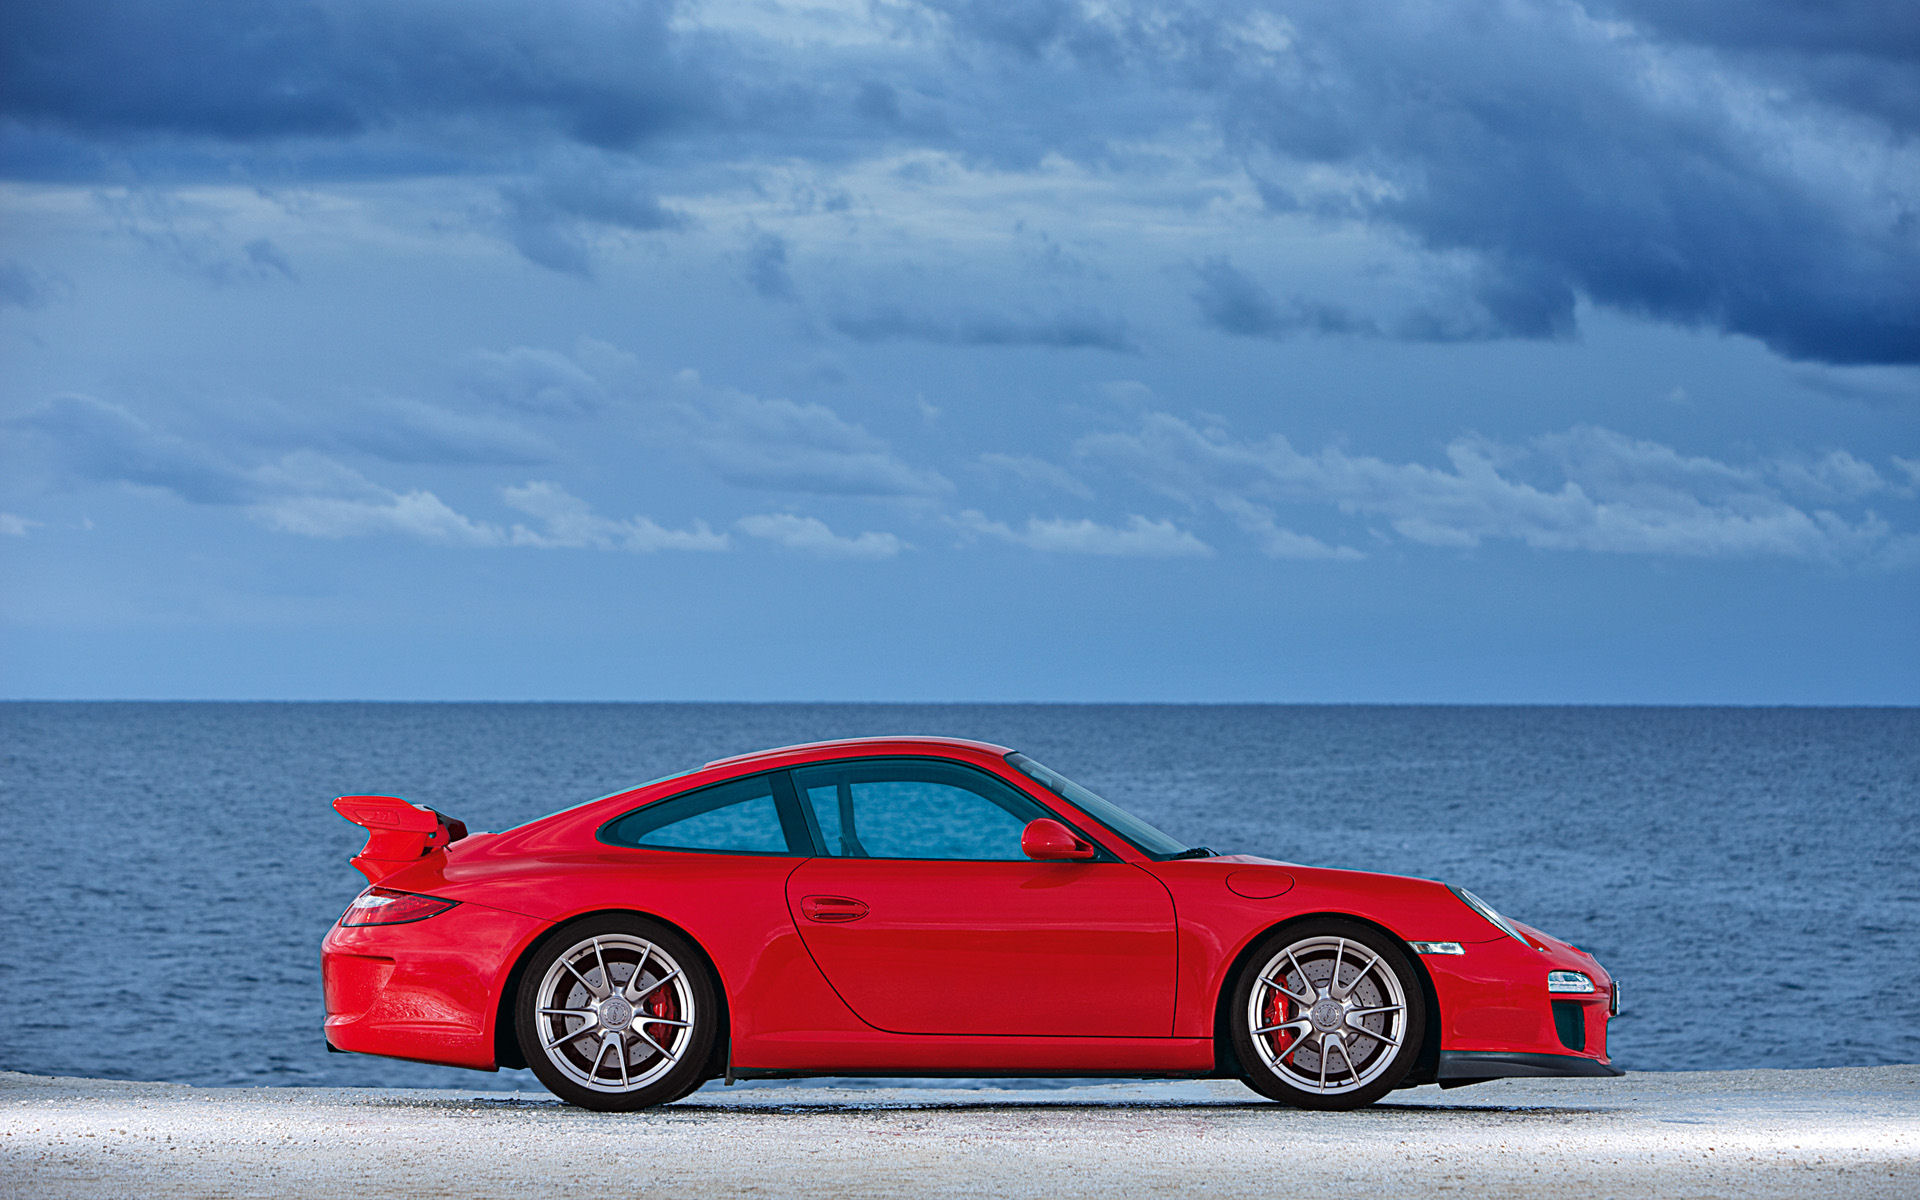 porsche 911 desktop wallpaper - Porsche 911 Wallpaper Widescreen